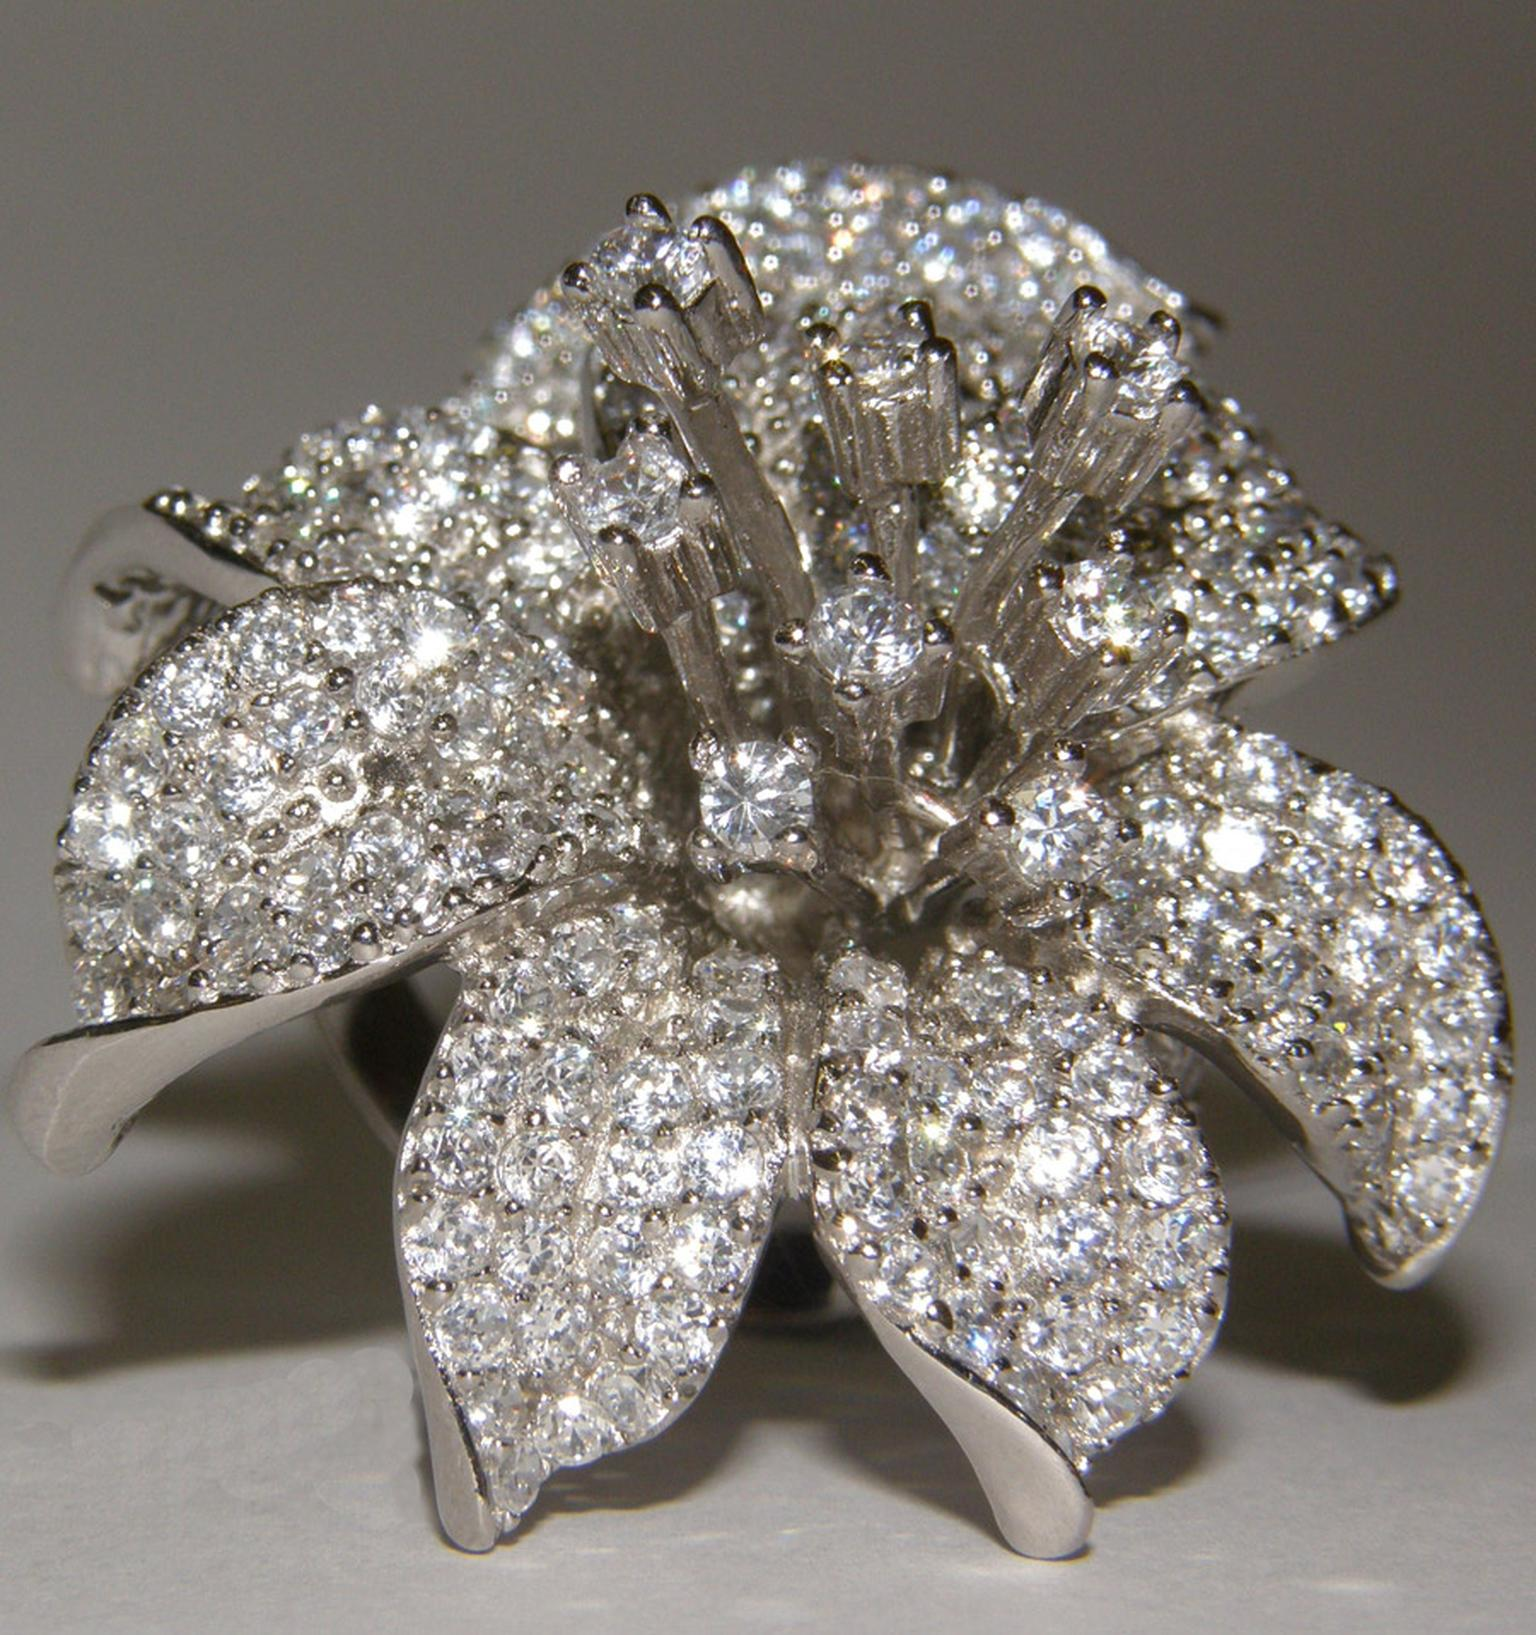 Burlington-Arcade-Large-Flower-ring-set-in-silver-rodhium-plated-stones-Cubic-Zirconia